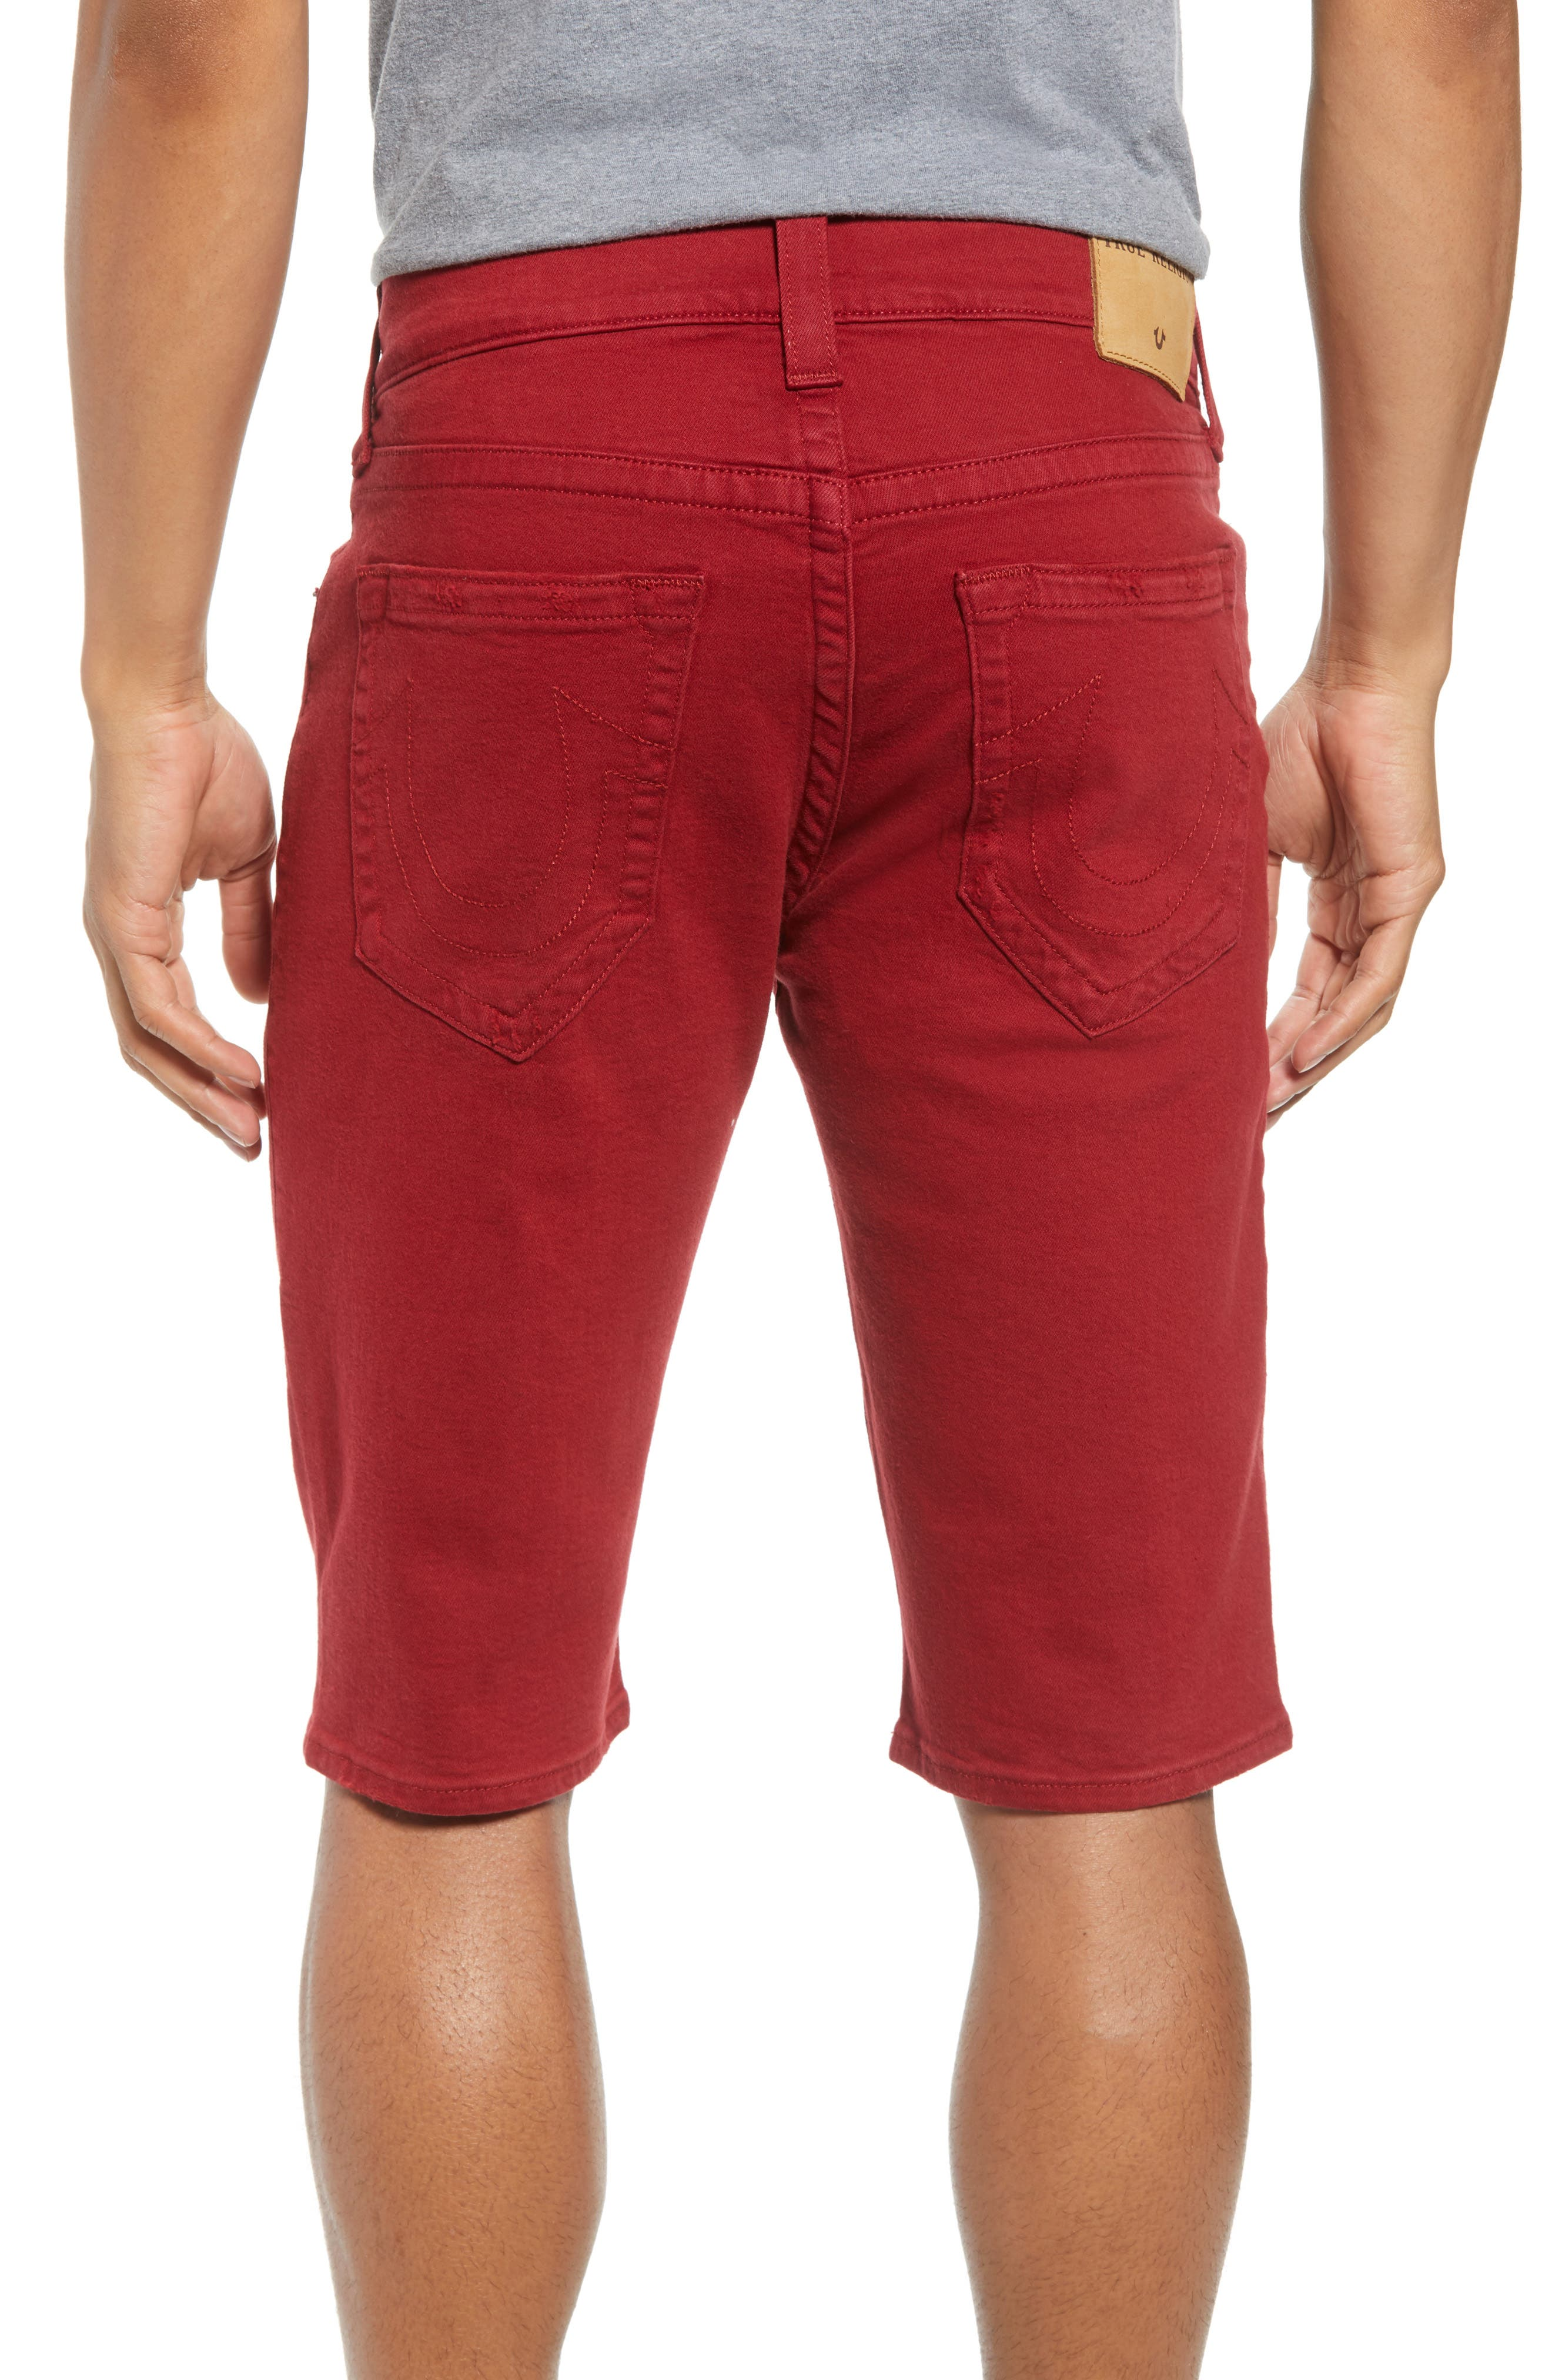 Ricky Relaxed Fit Shorts,                             Alternate thumbnail 2, color,                             Firecracker Red